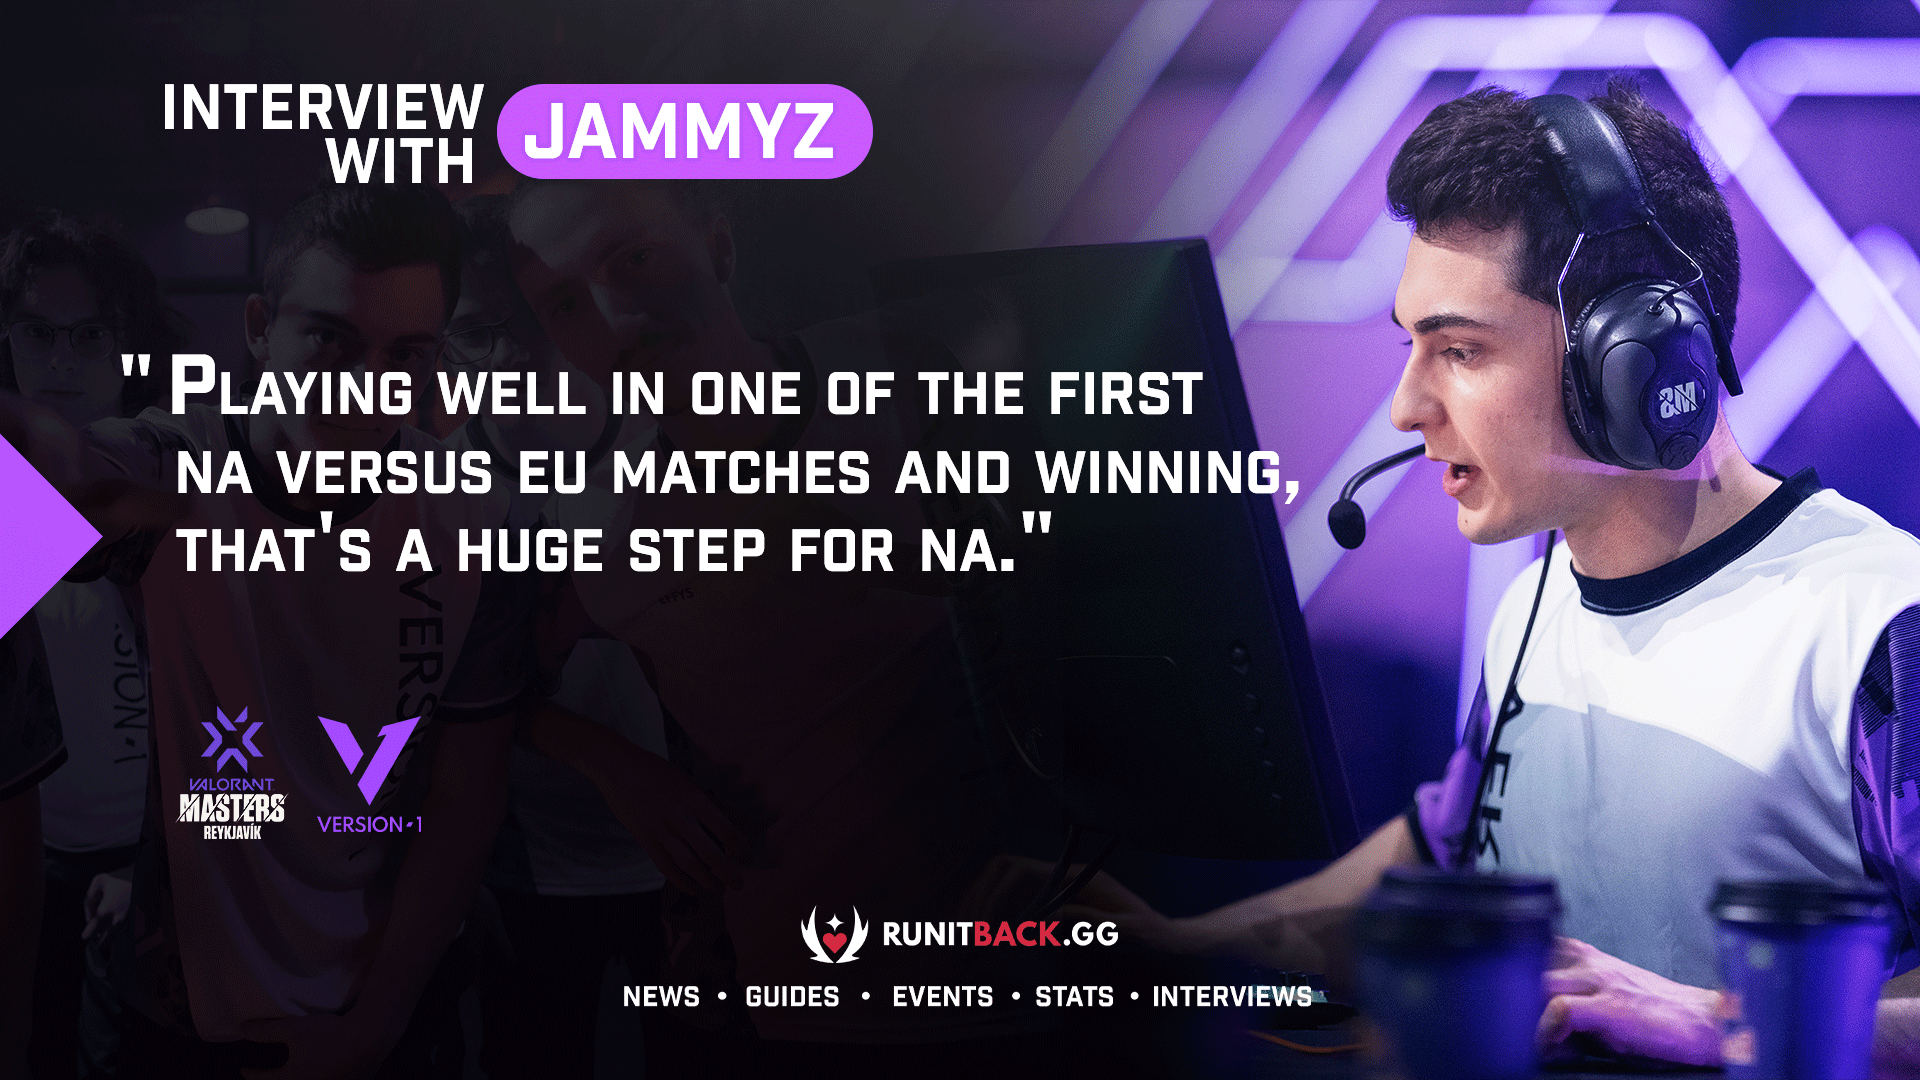 jammyz speaks with Run It Back about the huge win for NA and how he is fitting in with Version1